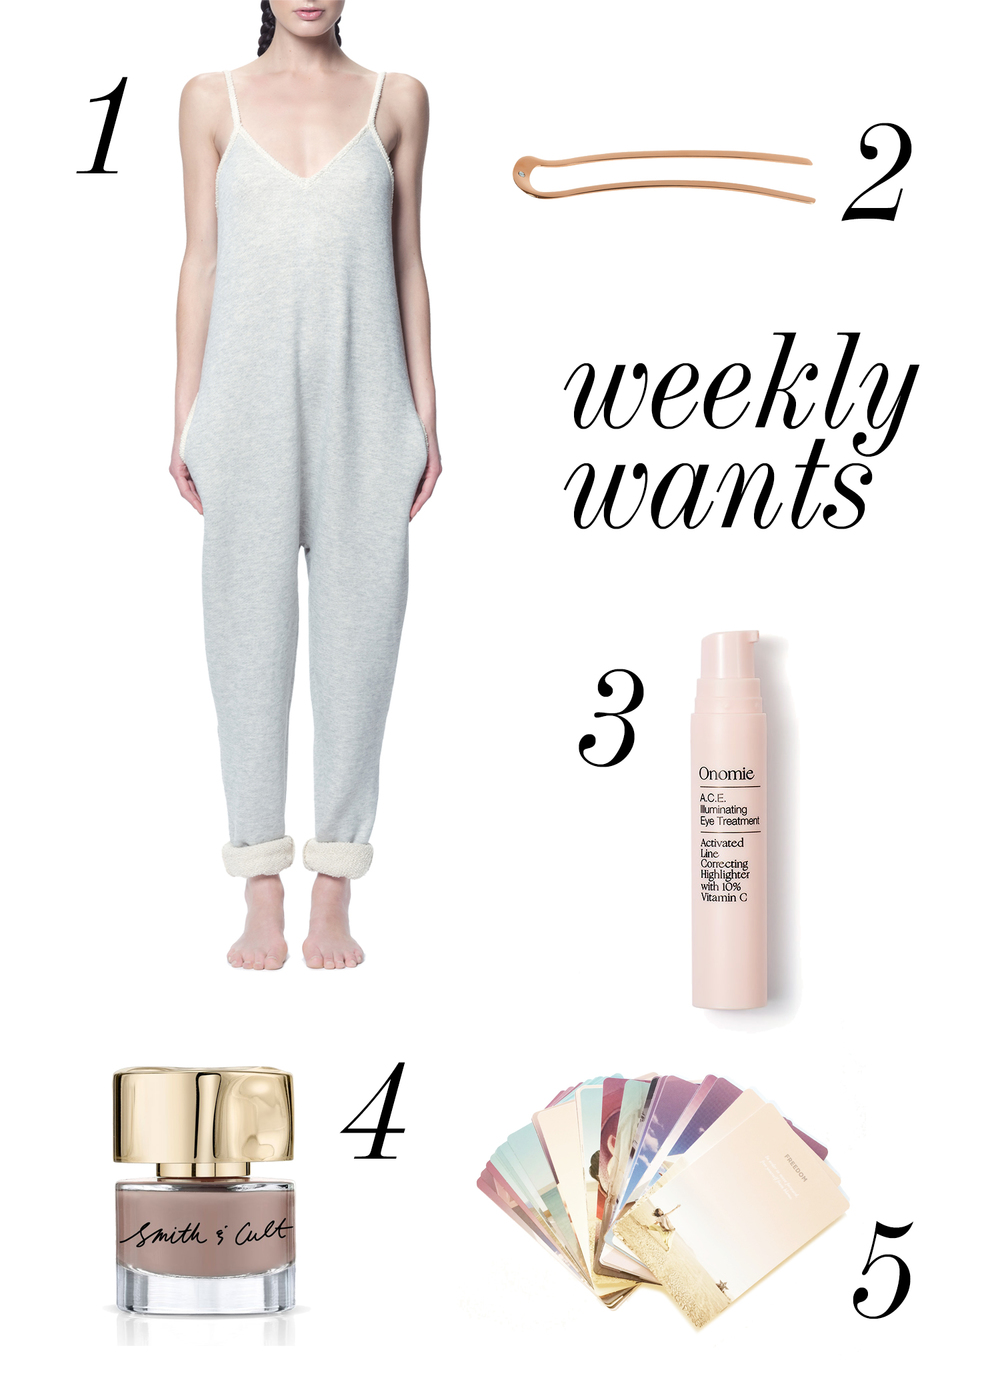 WEEKLY WANTS 9-11-15